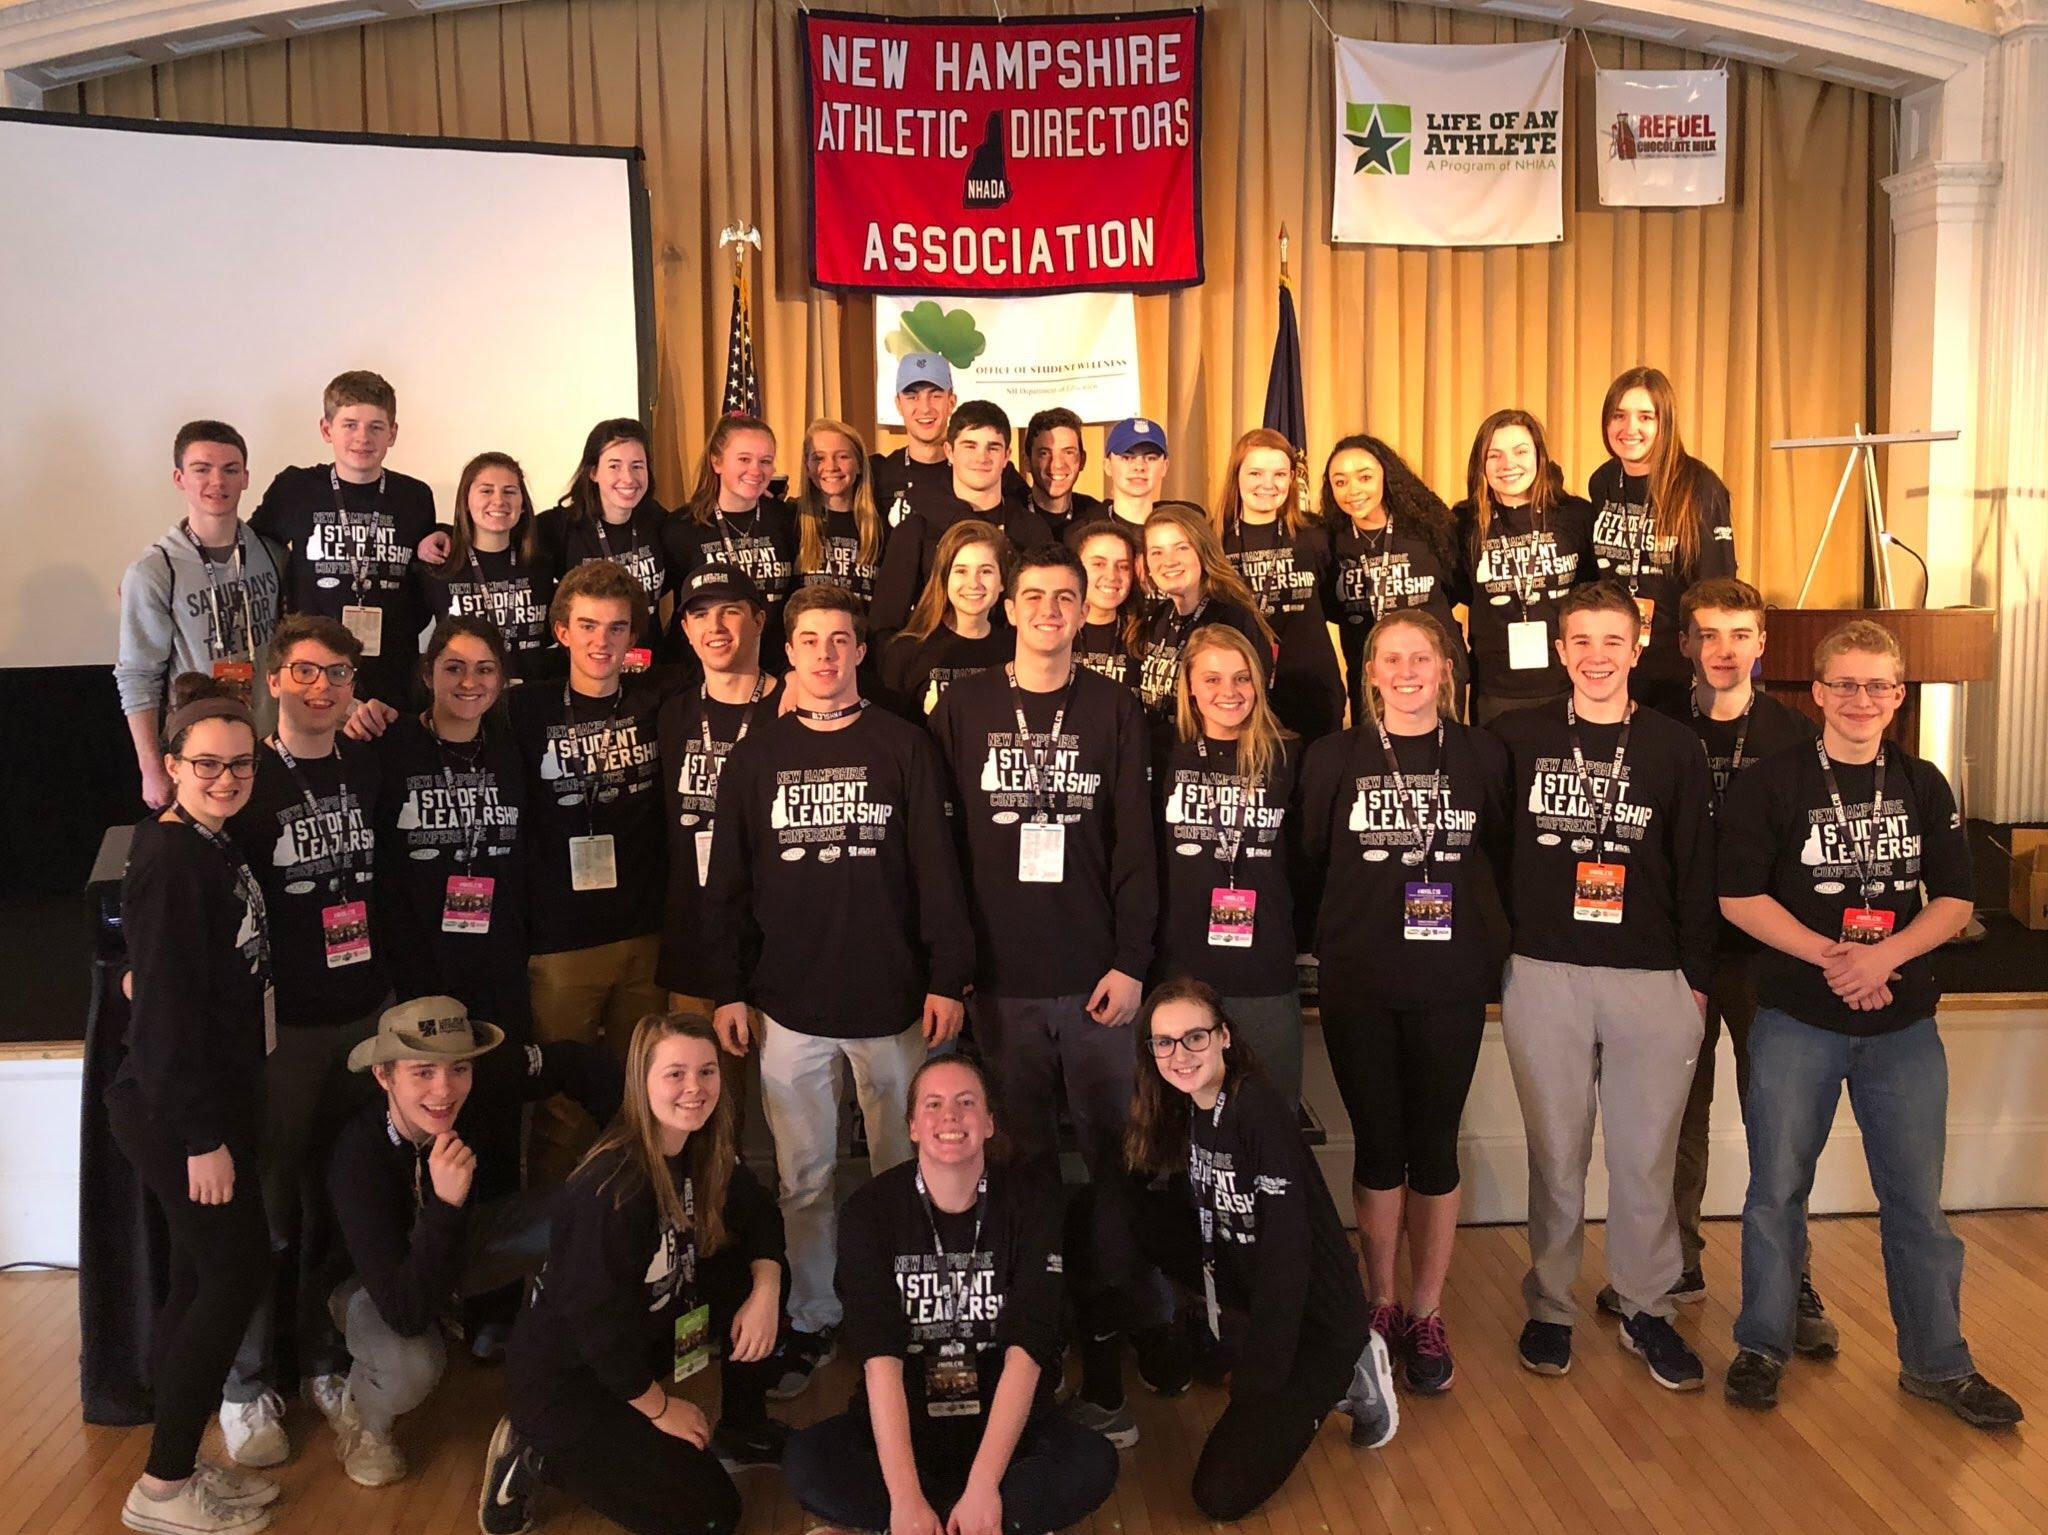 NHIAA | New Hampshire Interscholastic Athletic Association | NH